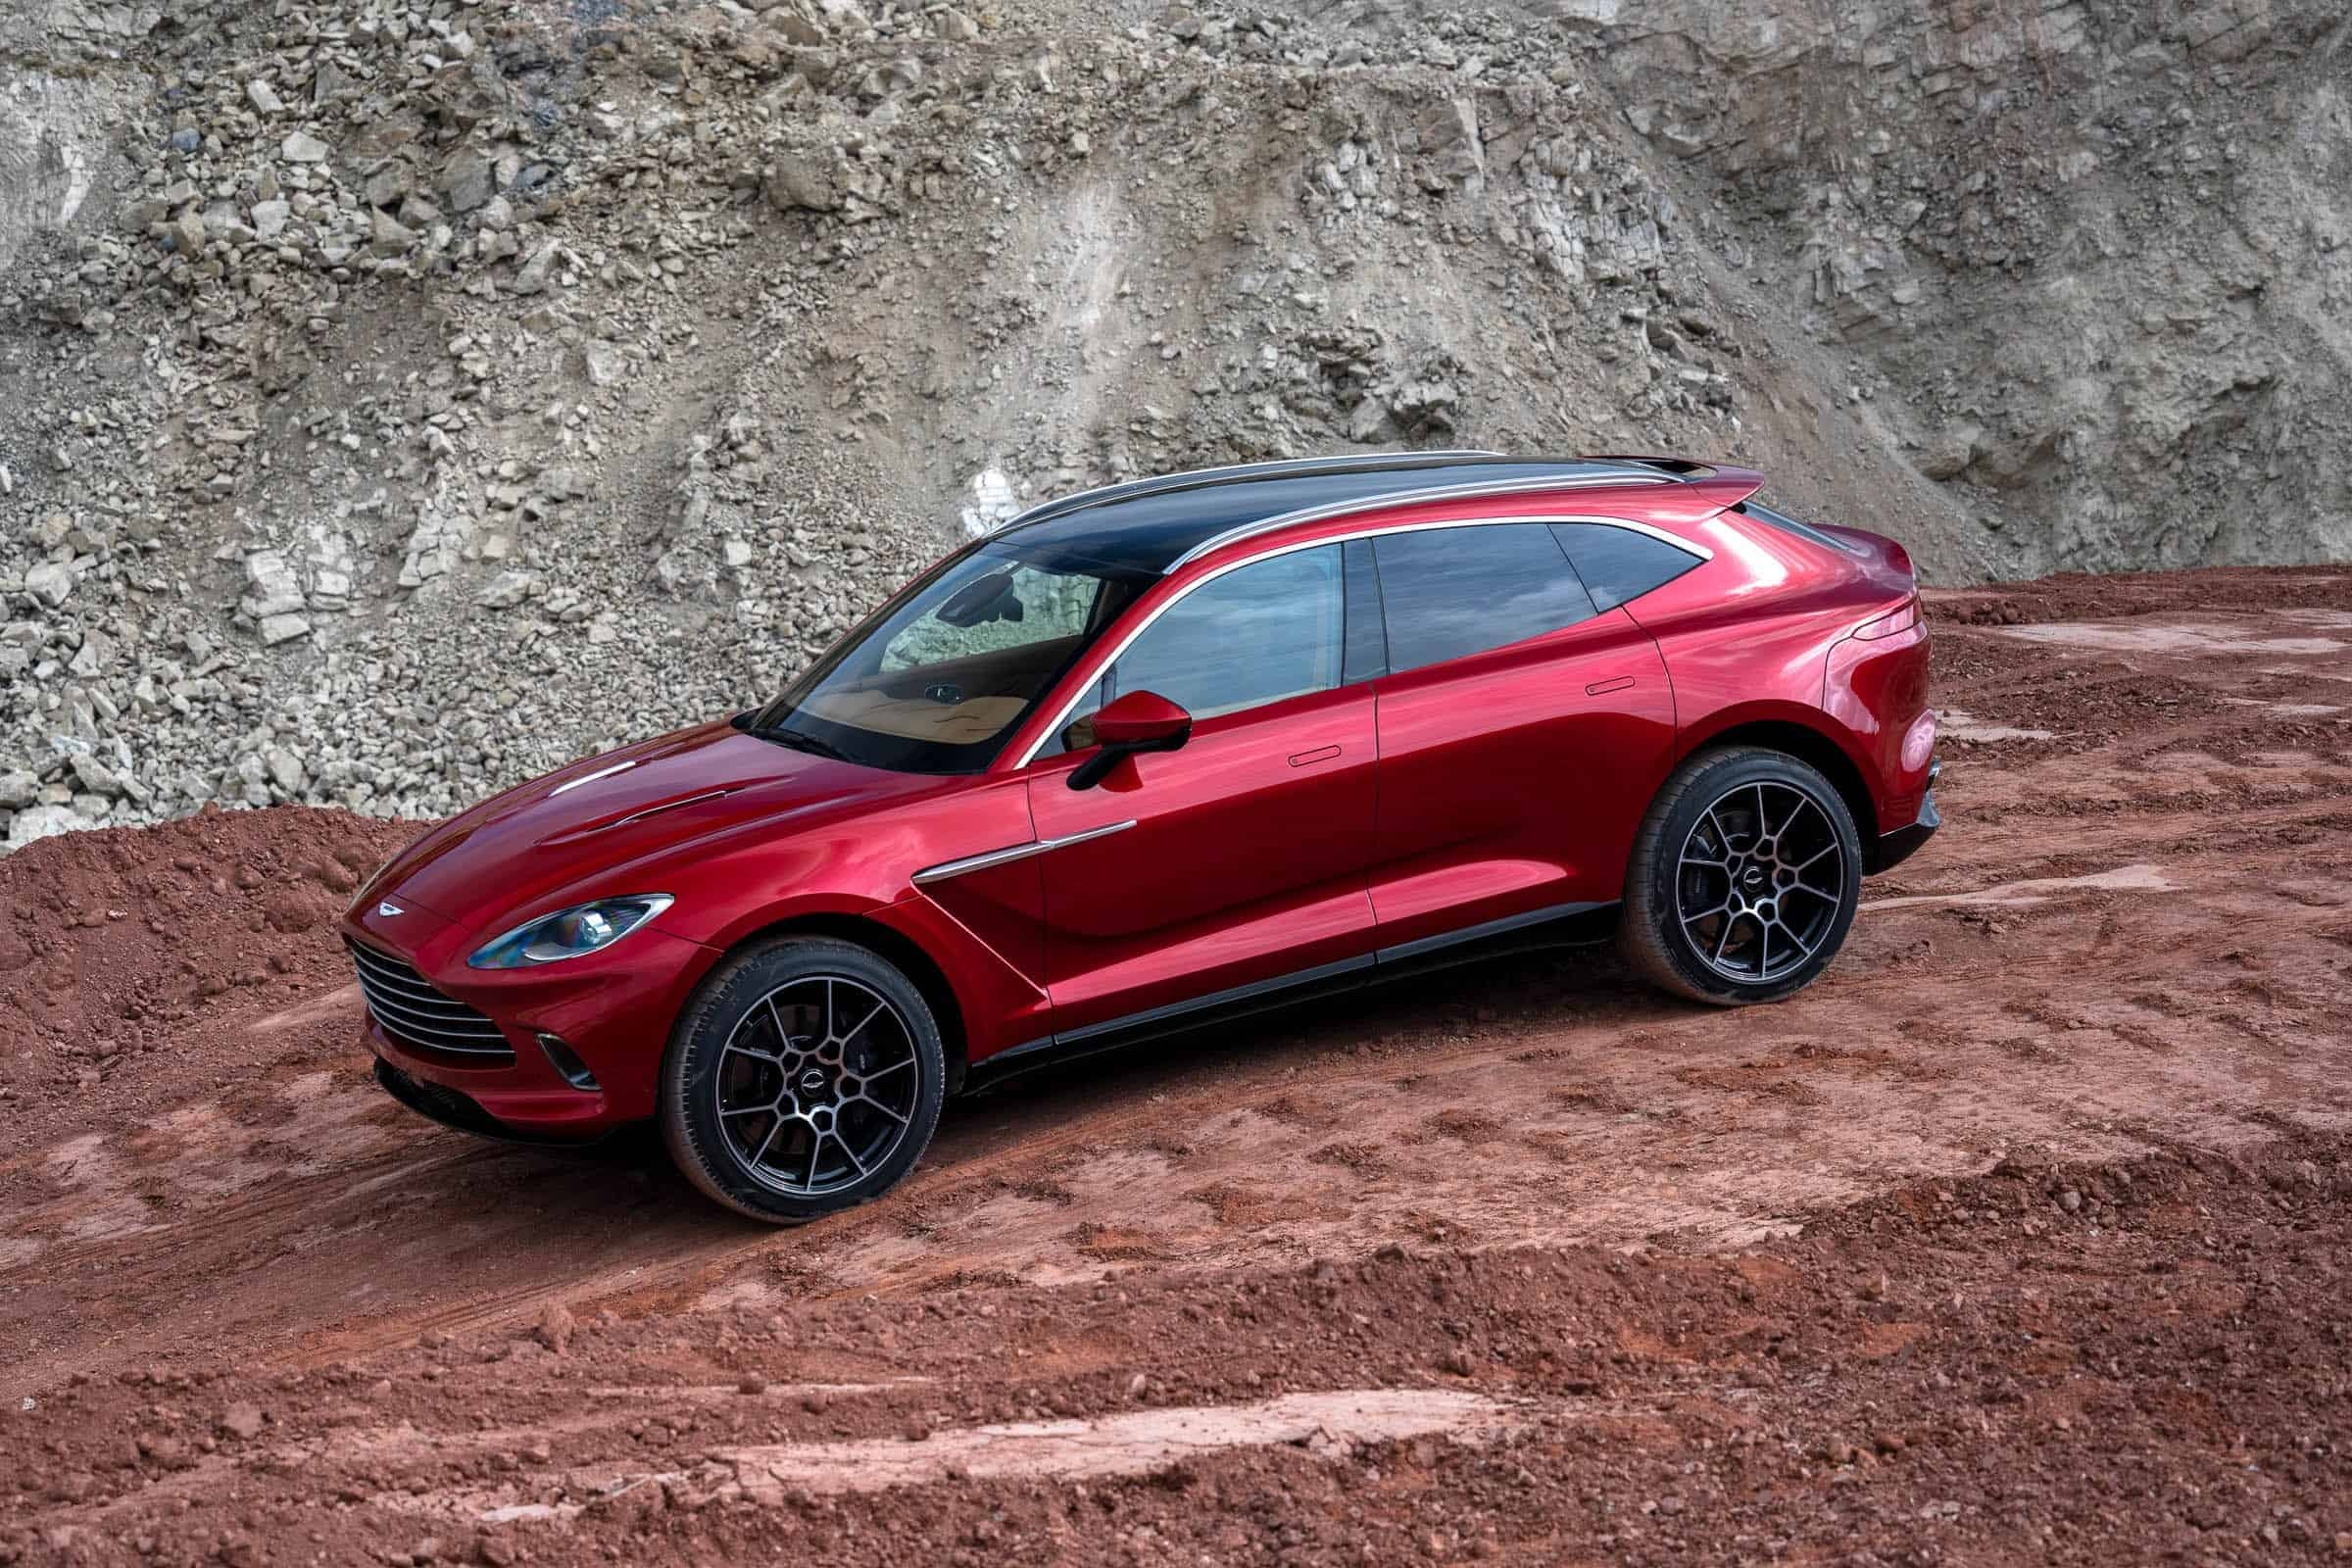 Aston Martin and his first SUV, an all-star off-road!